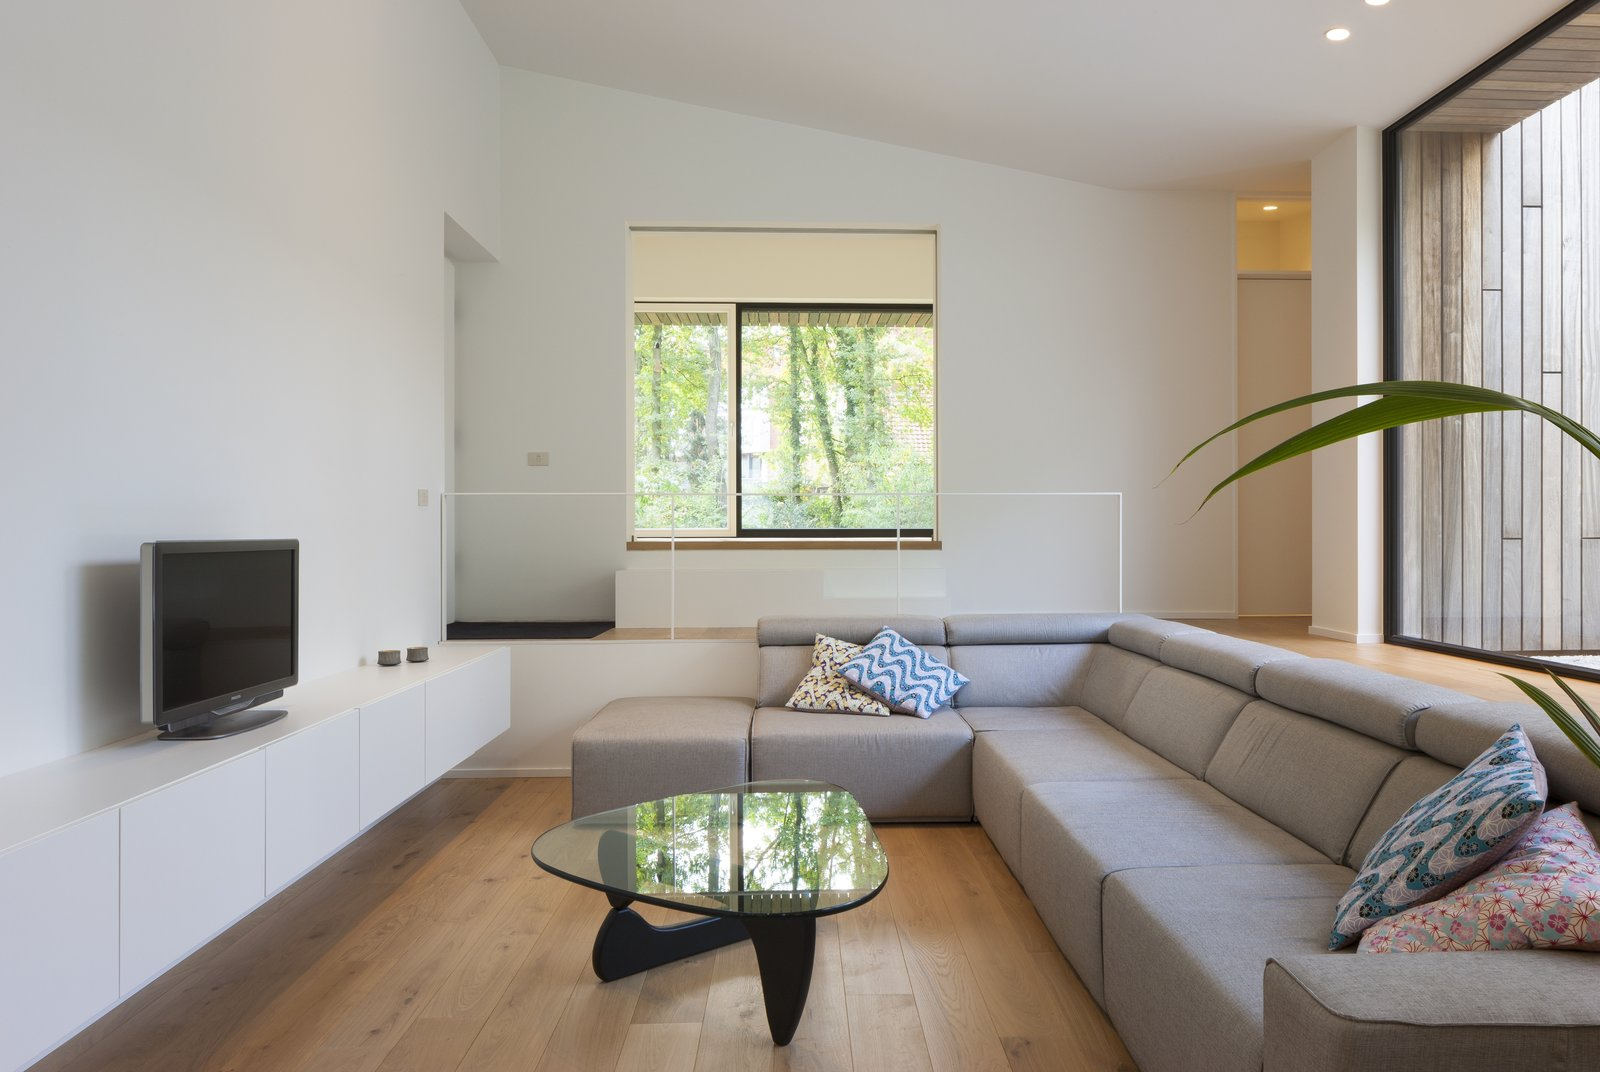 A Noguchi coffee table in the living lounge.